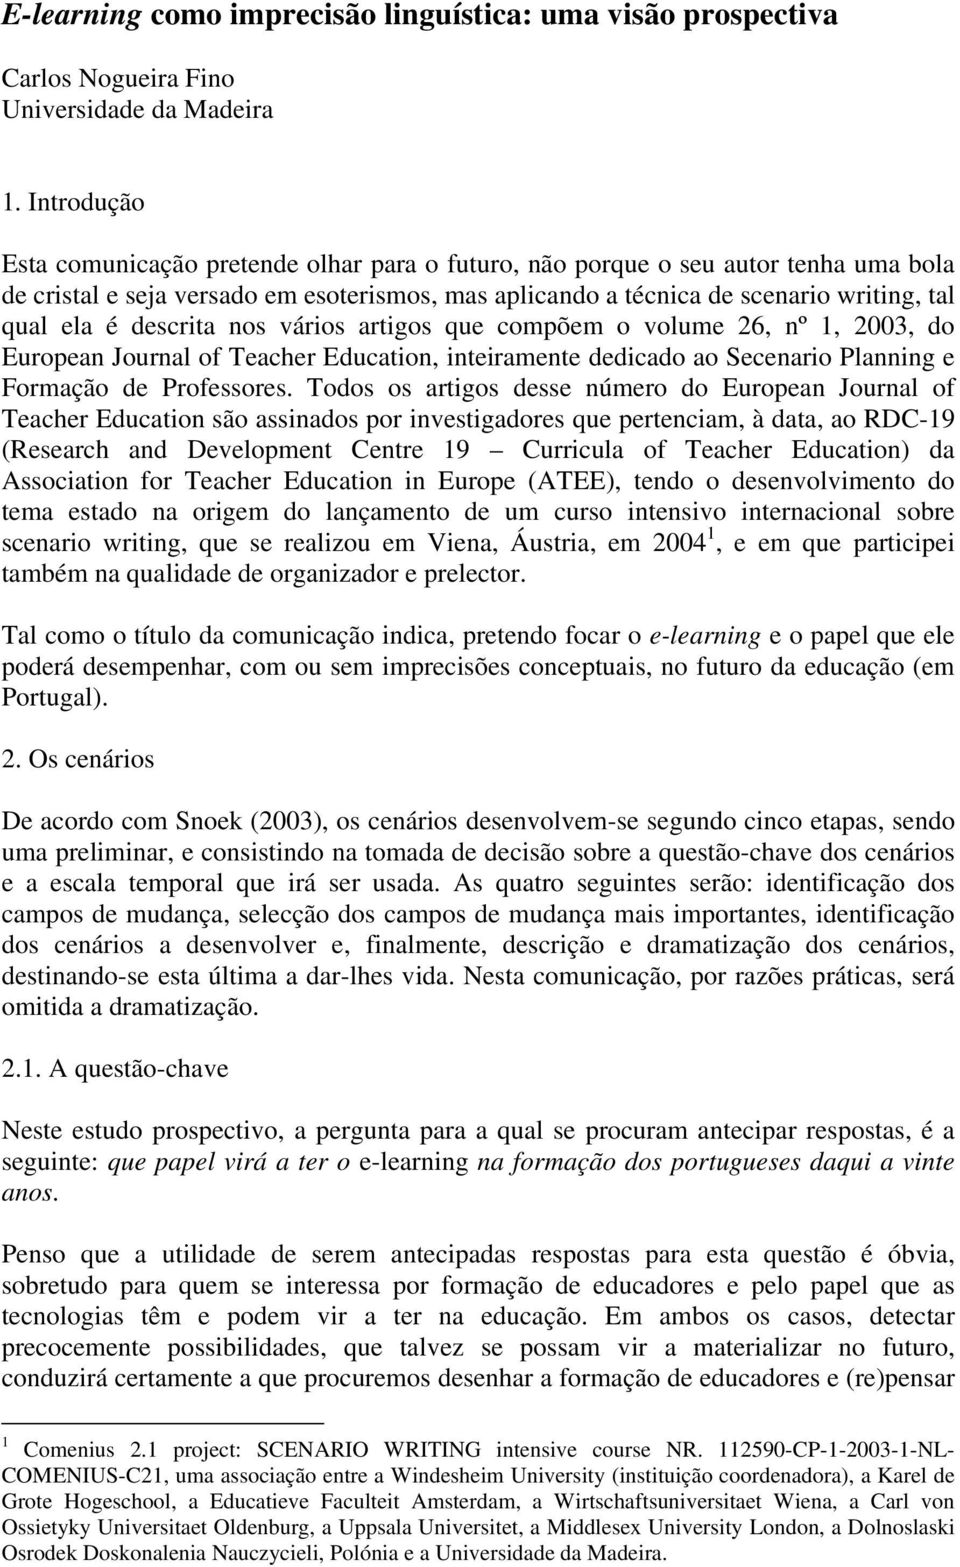 descrita nos vários artigos que compõem o volume 26, nº 1, 2003, do European Journal of Teacher Education, inteiramente dedicado ao Secenario Planning e Formação de Professores.